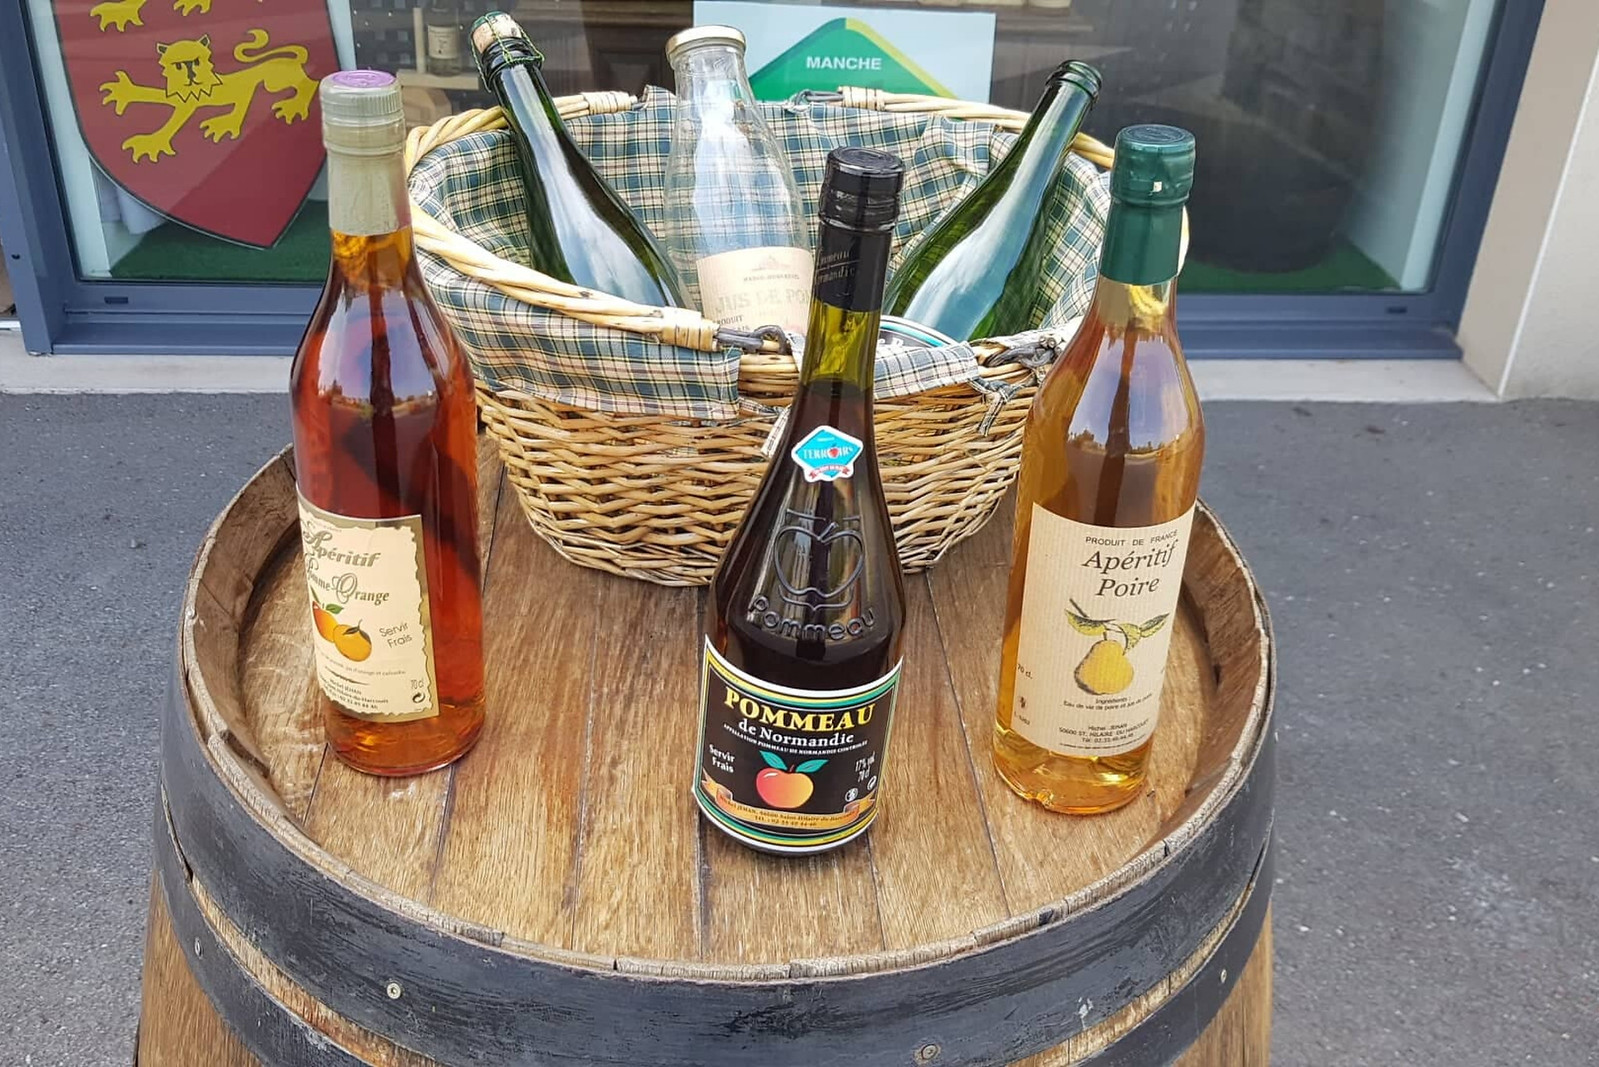 Apple and pear cider in Normandy, France